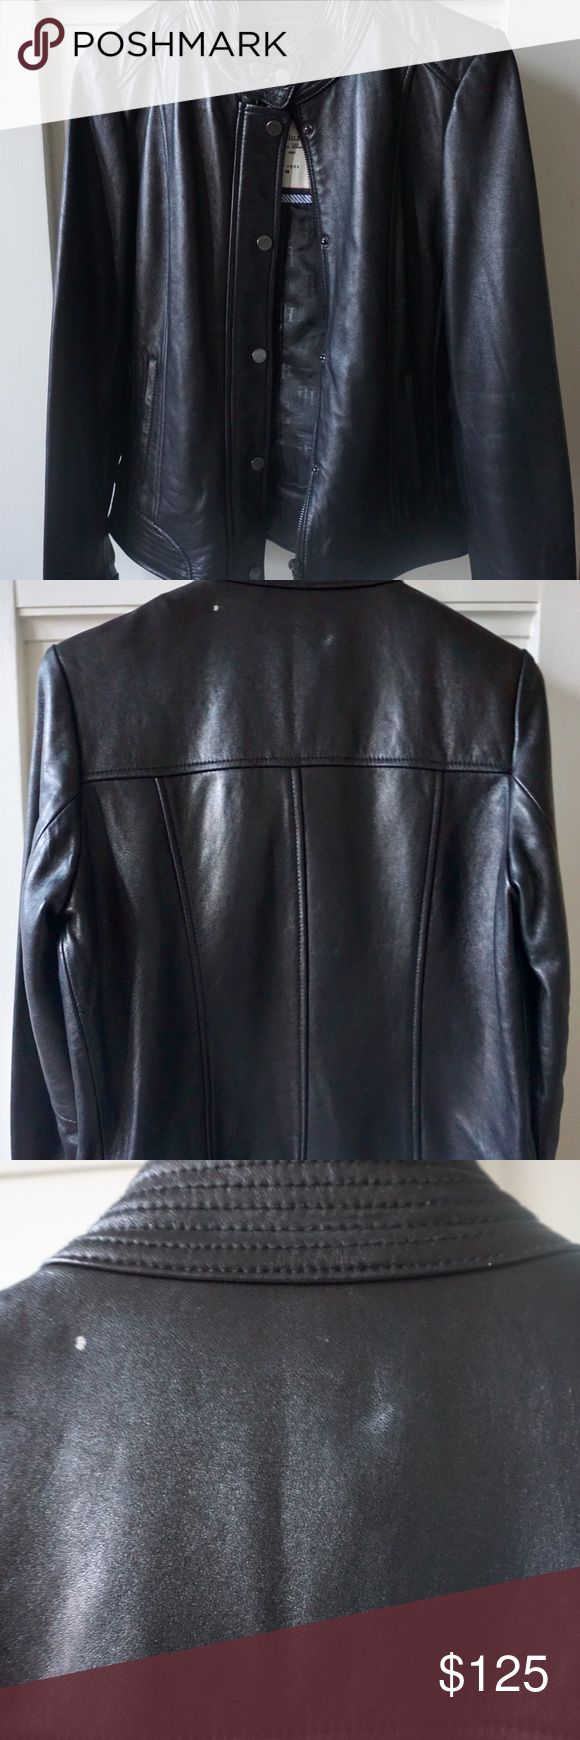 🖤✨ black Tommy Hilfiger leather jacket Beautiful Classic American TH black leather jacket for sale!  • 100% LEATHER • 100% Polyester lining  • size Medium • color Black • lightly used worn only a few times • front has pockets  • can be zipped up and/or buttoned up • VERY small white stains on front right side and on top of the back (as seen in picture) Tommy Hilfiger Jackets & Coats